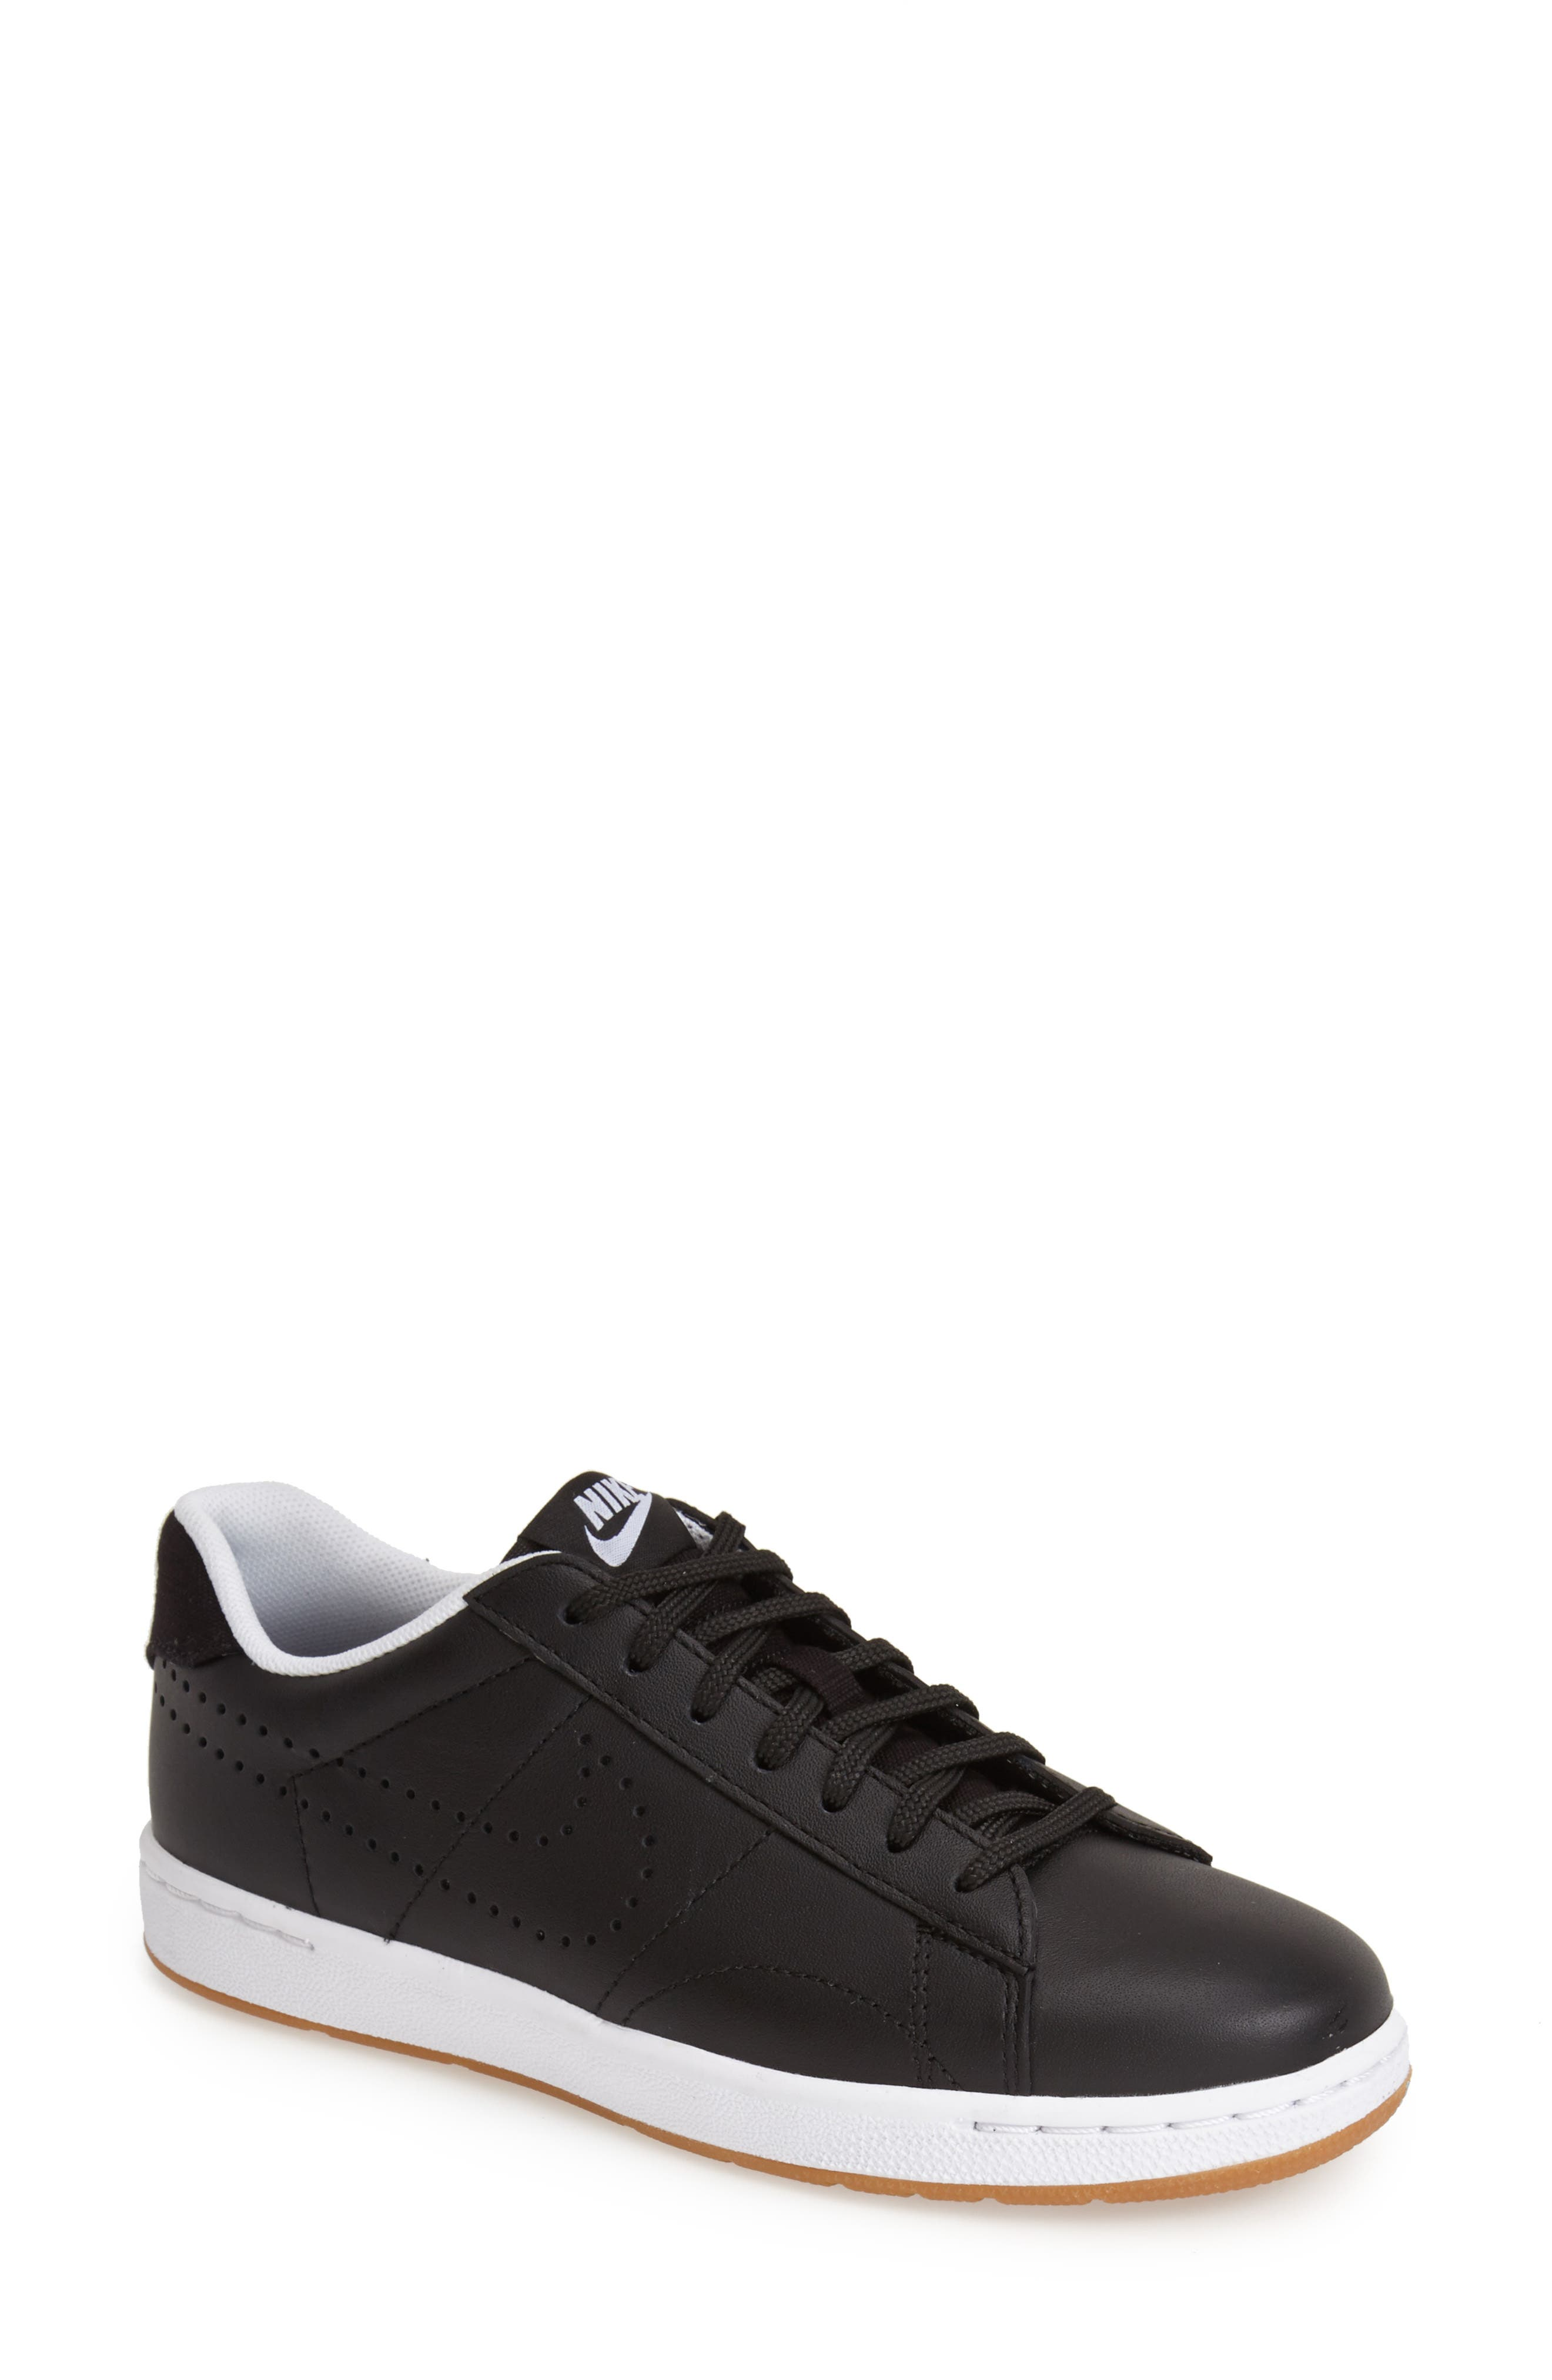 'Classic Ultra' Leather Sneaker,                             Alternate thumbnail 6, color,                             001